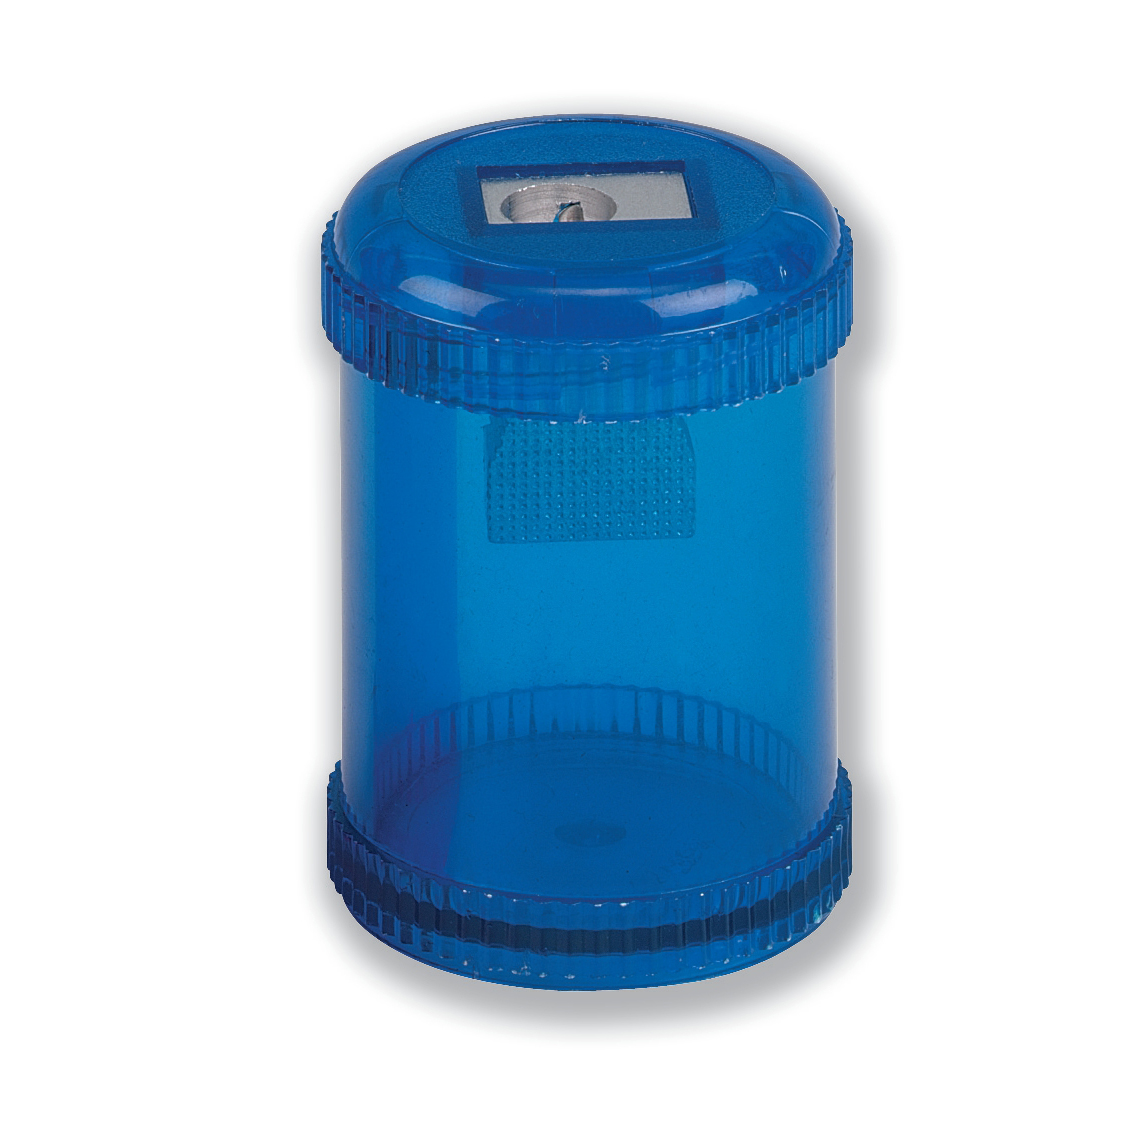 Sharpeners 5 Star Office Pencil Sharpener Plastic Canister One Hole Max. Diameter 8mm Blue